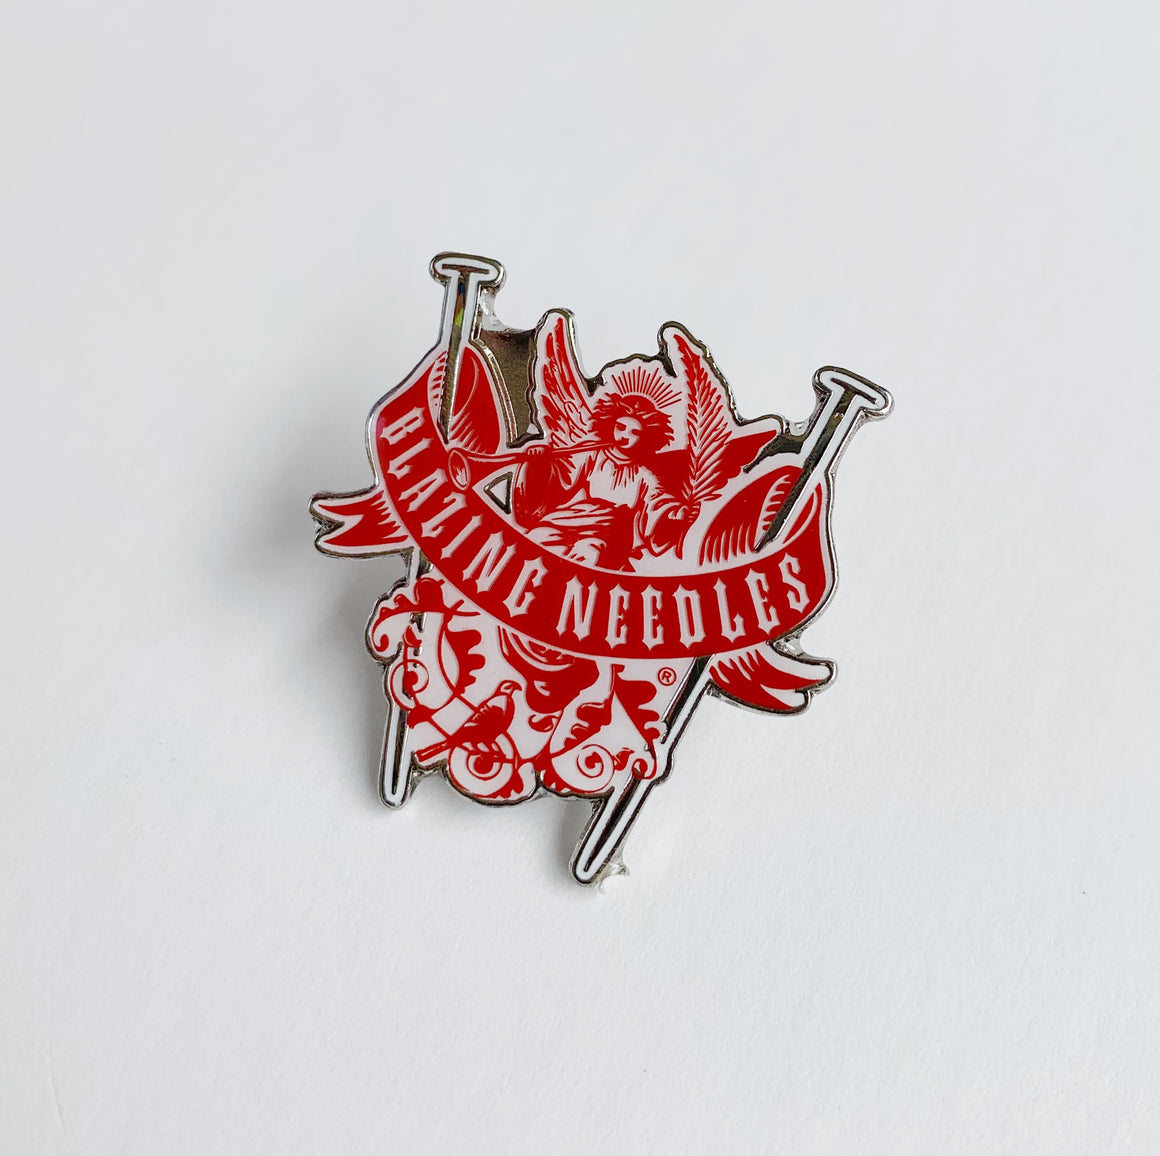 Blazing Needles Enamel Pin